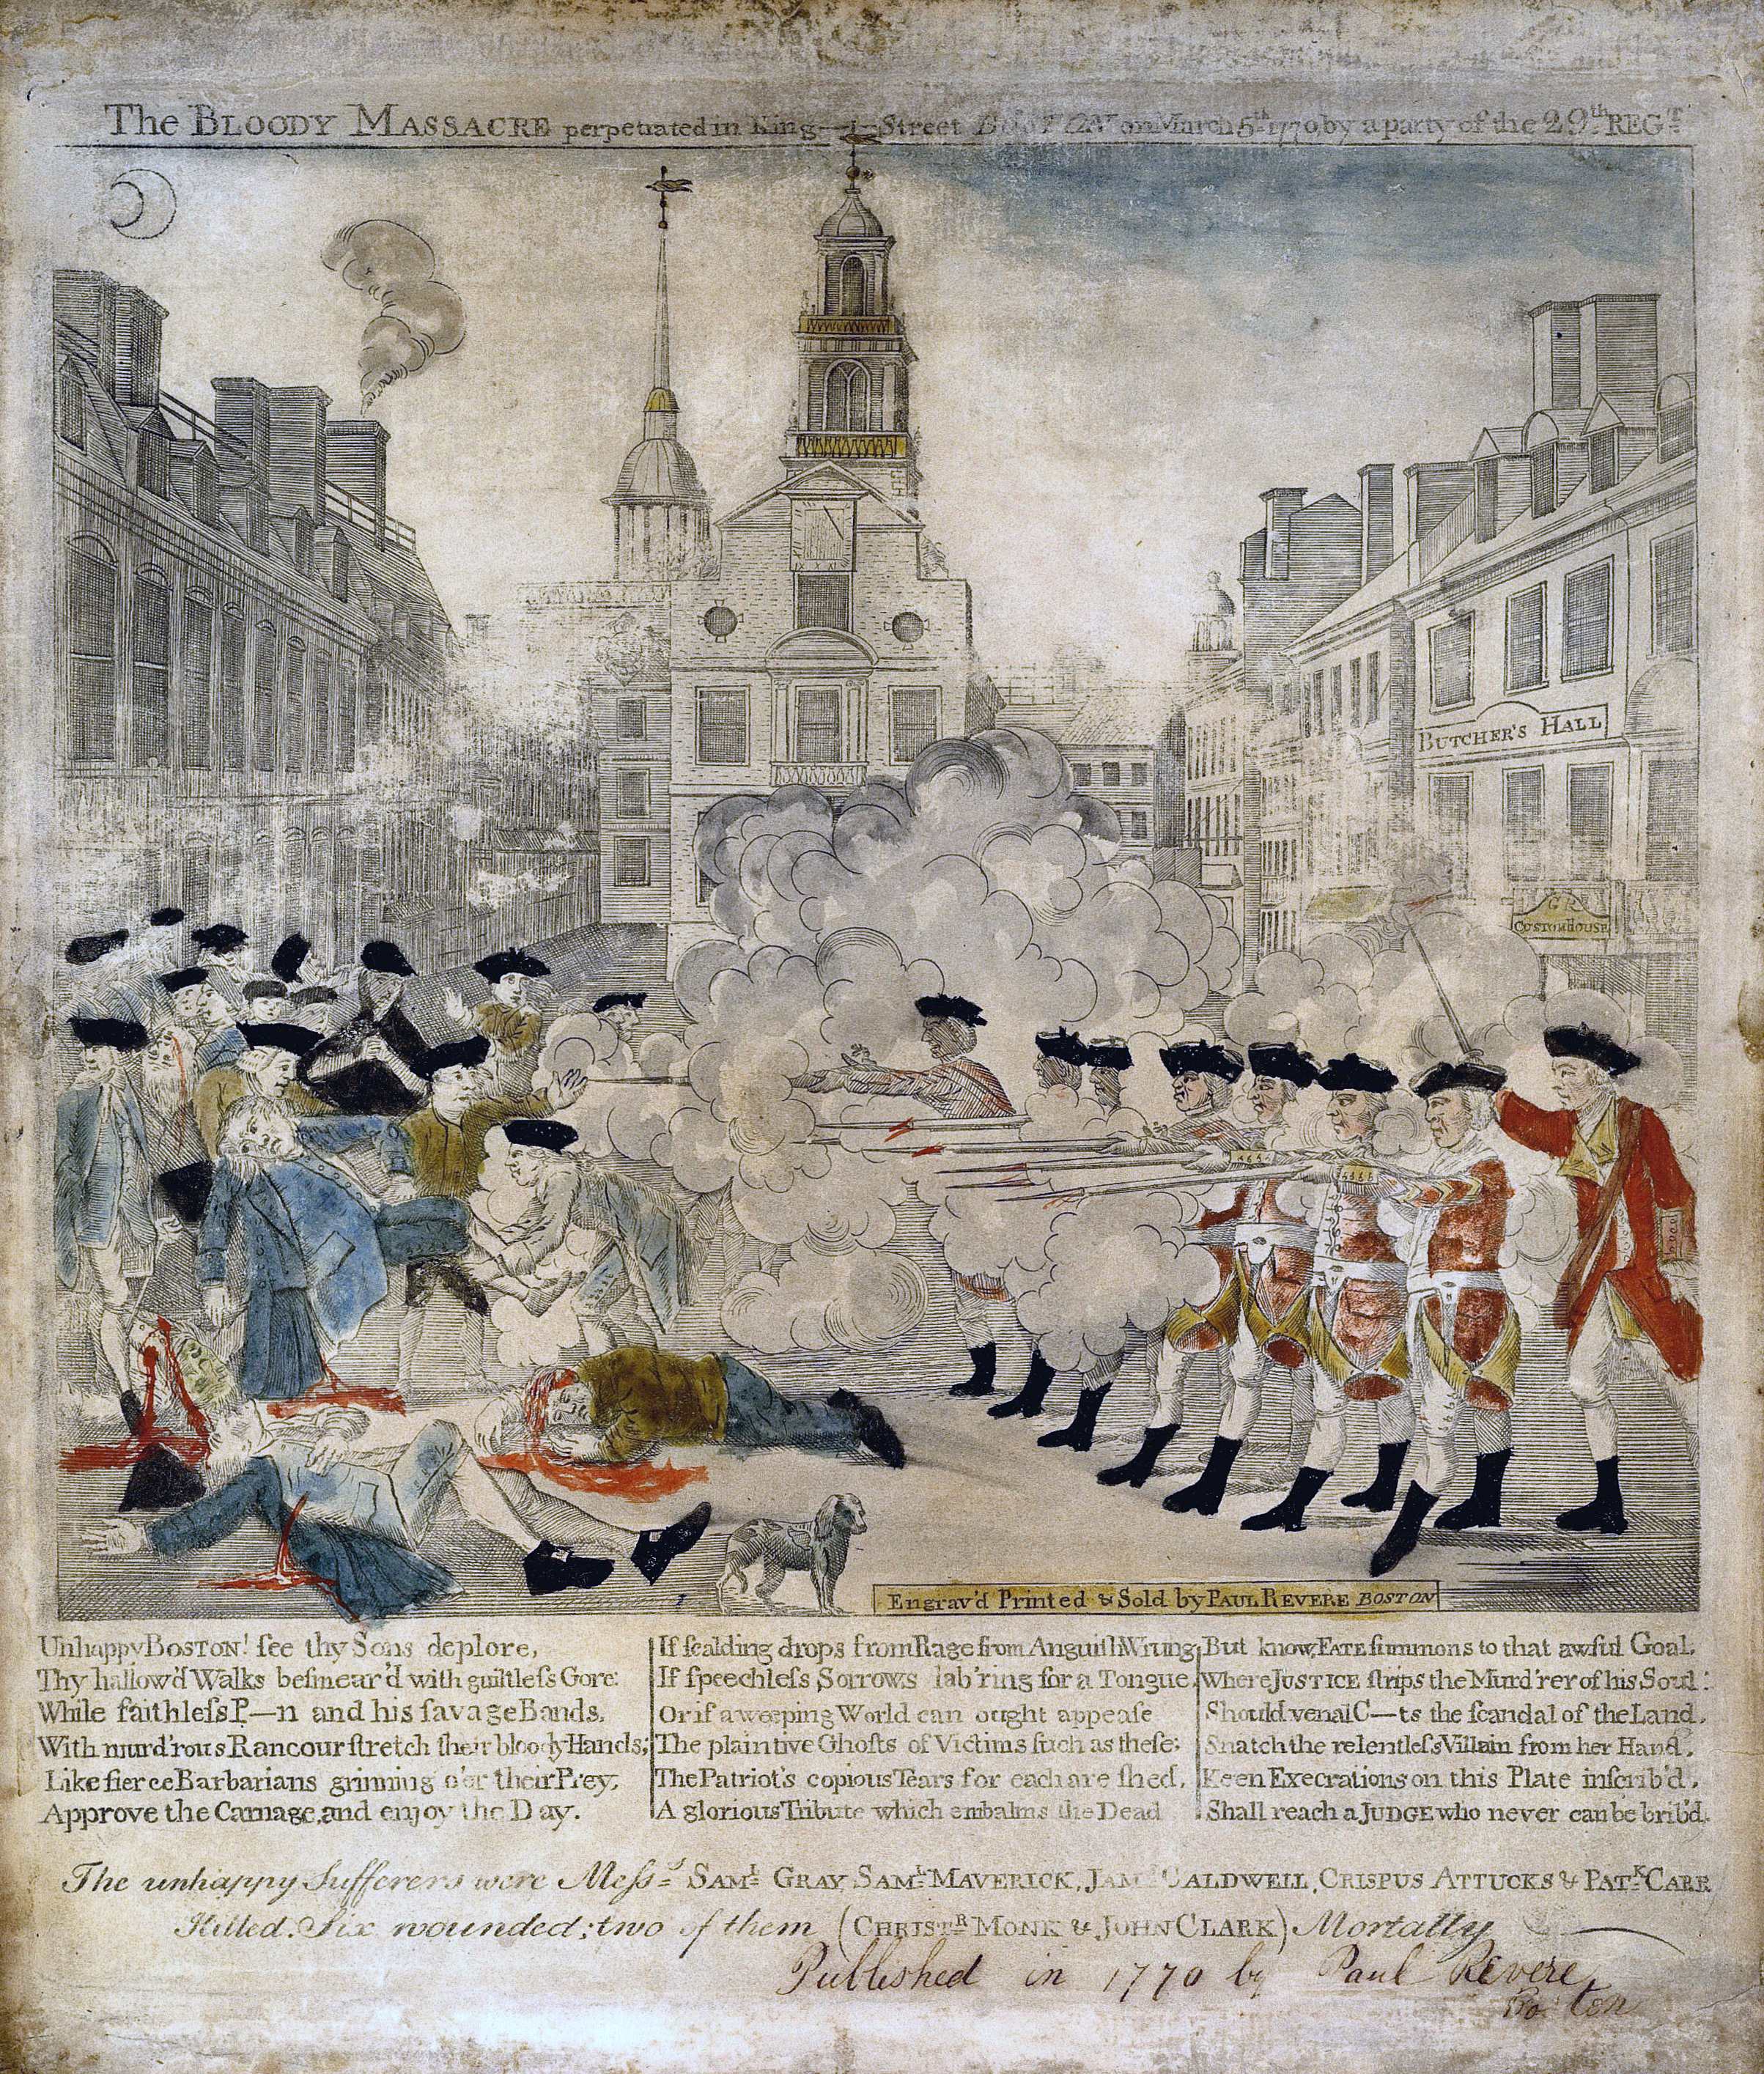 http://upload.wikimedia.org/wikipedia/commons/e/e1/Boston_Massacre_high-res.jpg